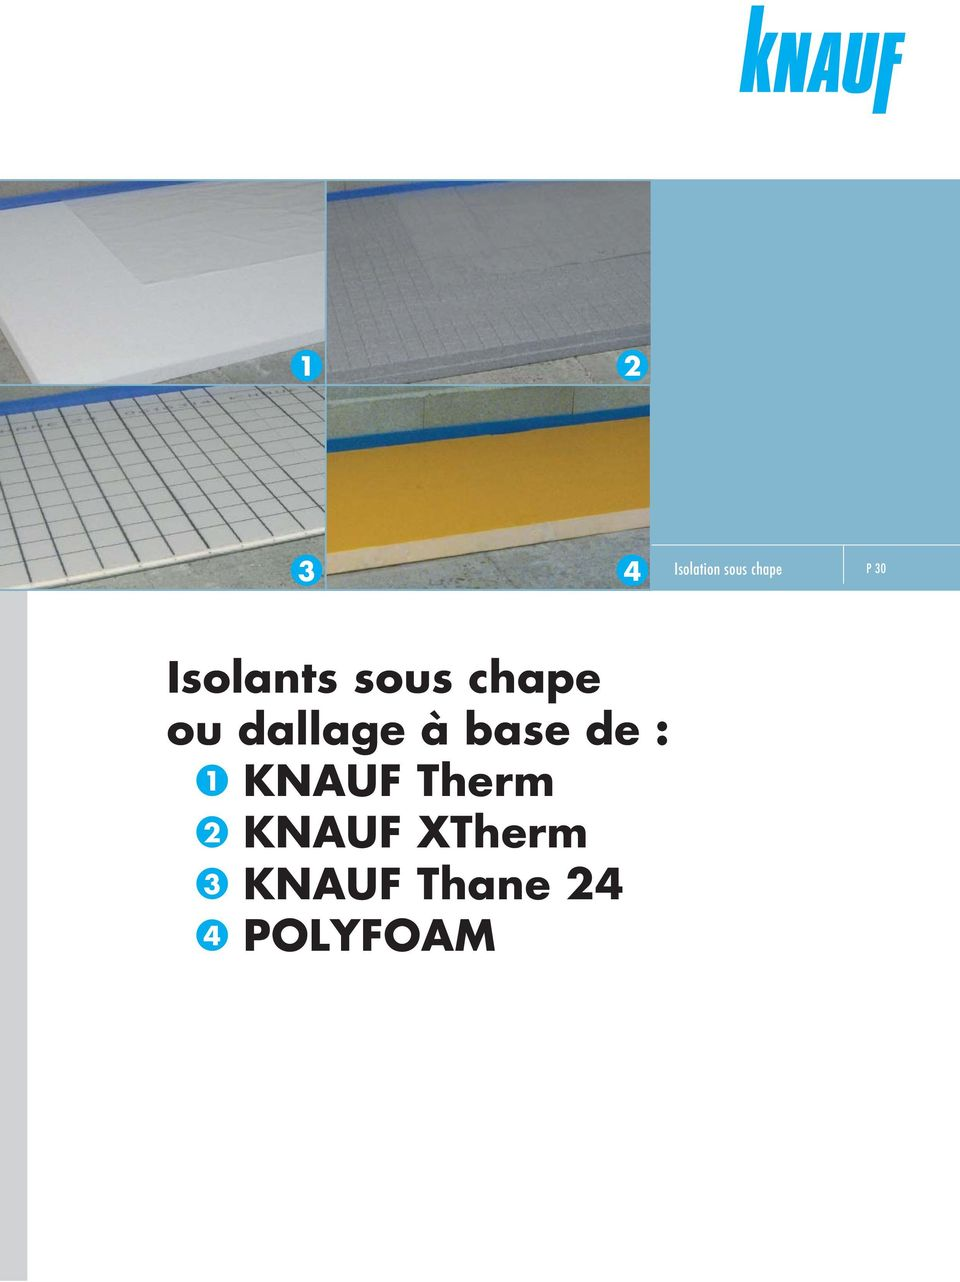 base de : 1 KNAUF Therm 2 KNAUF